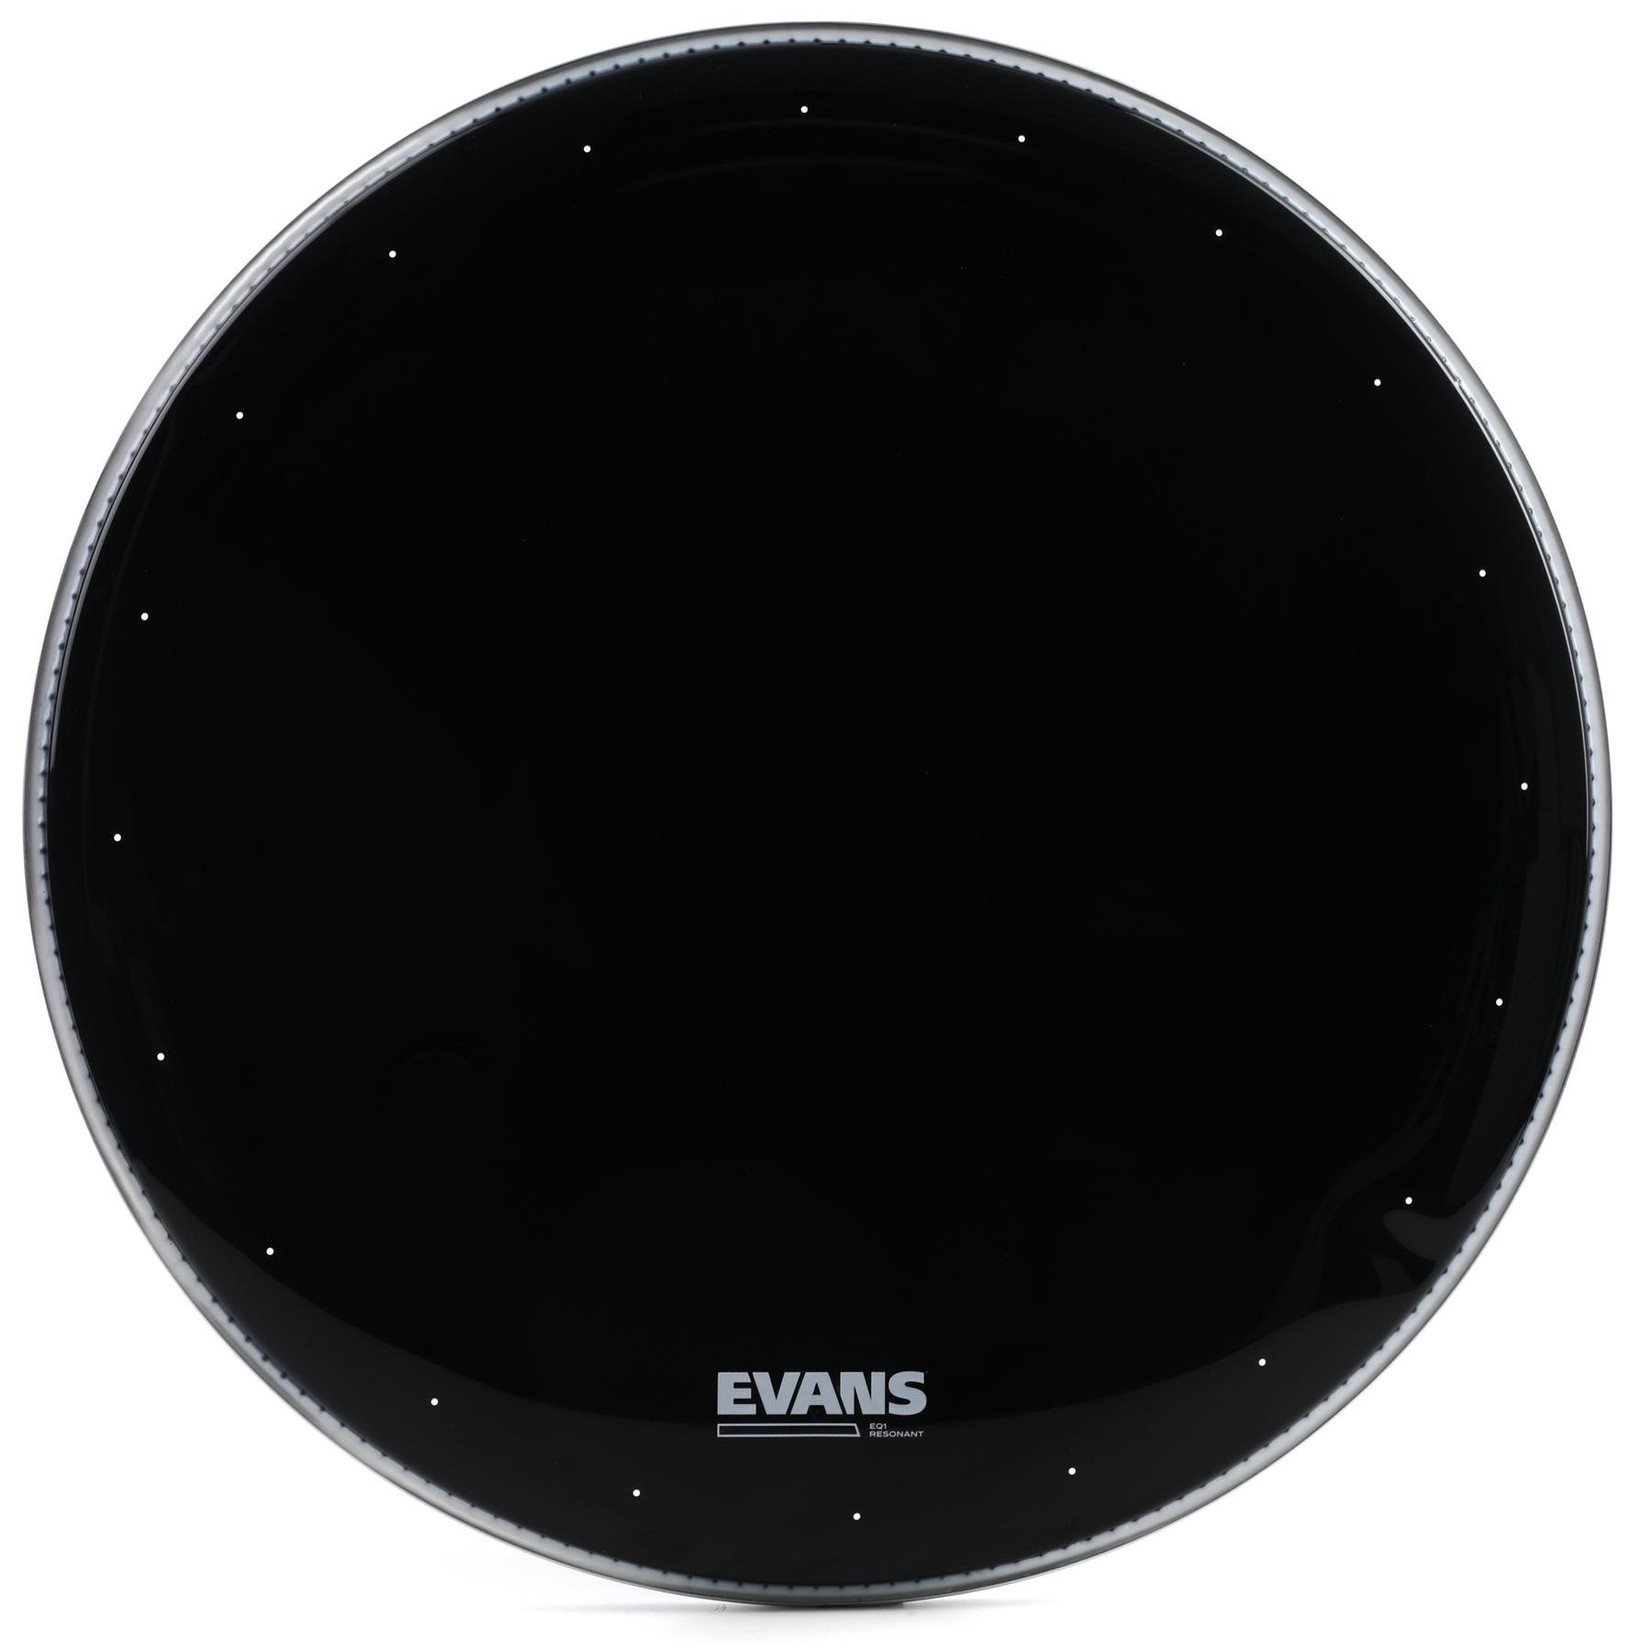 Evans Evans Black EQ1 Bass Drum Reso